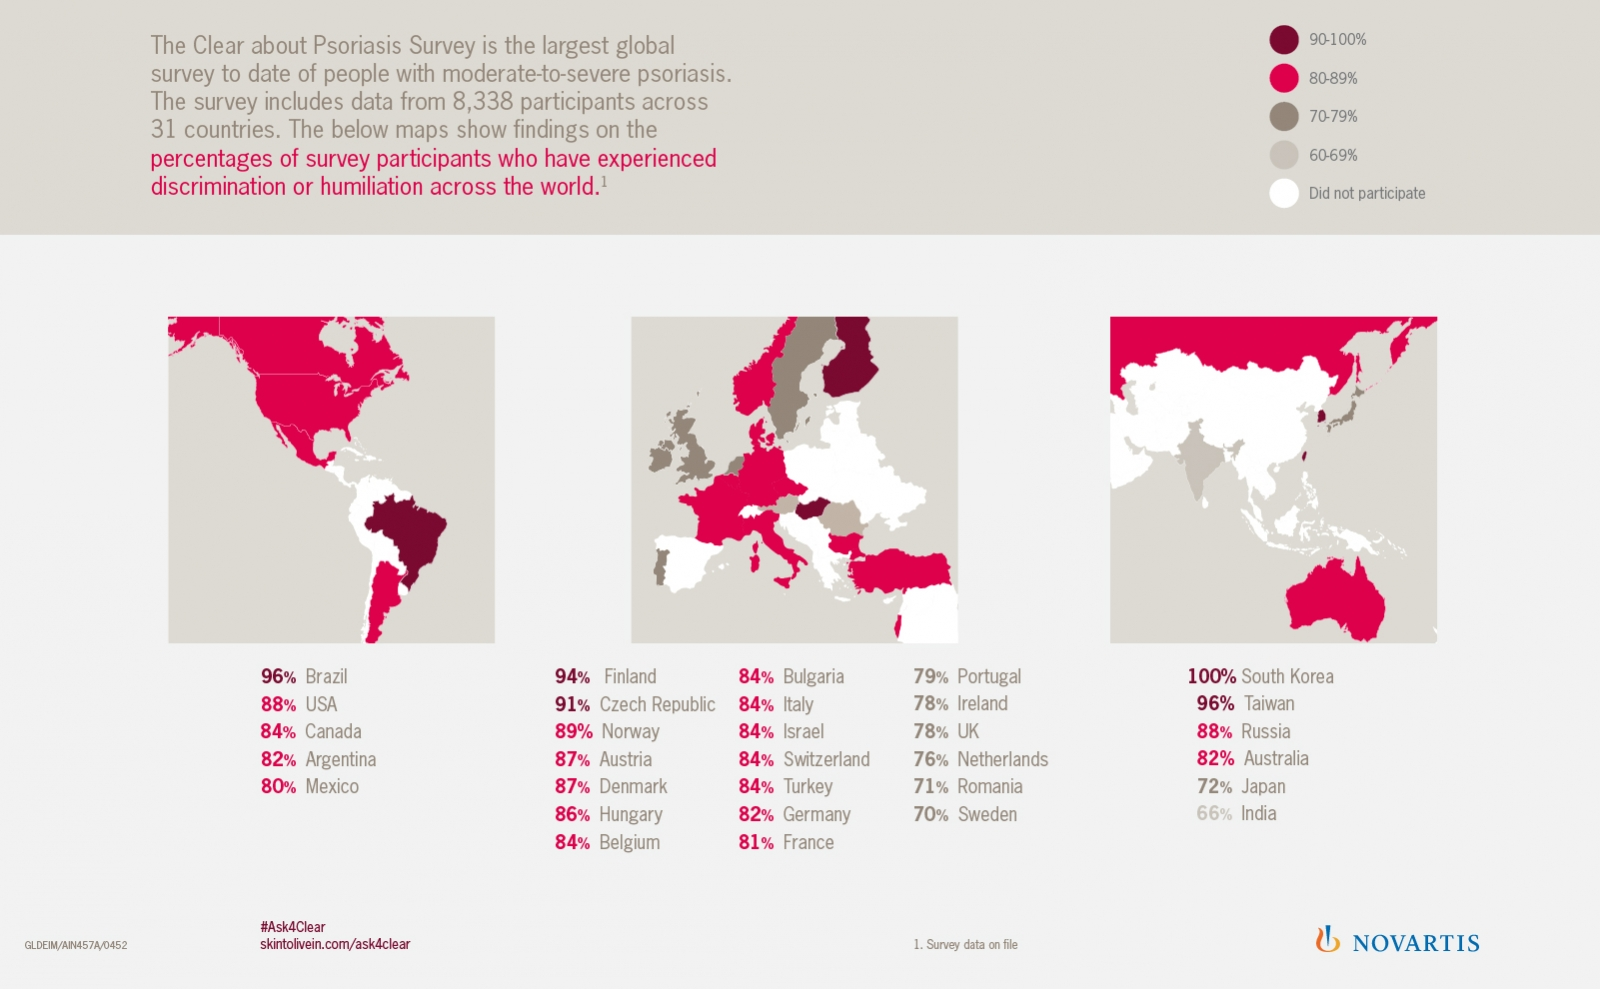 Novartis Clear About Psoriasis Infographic map